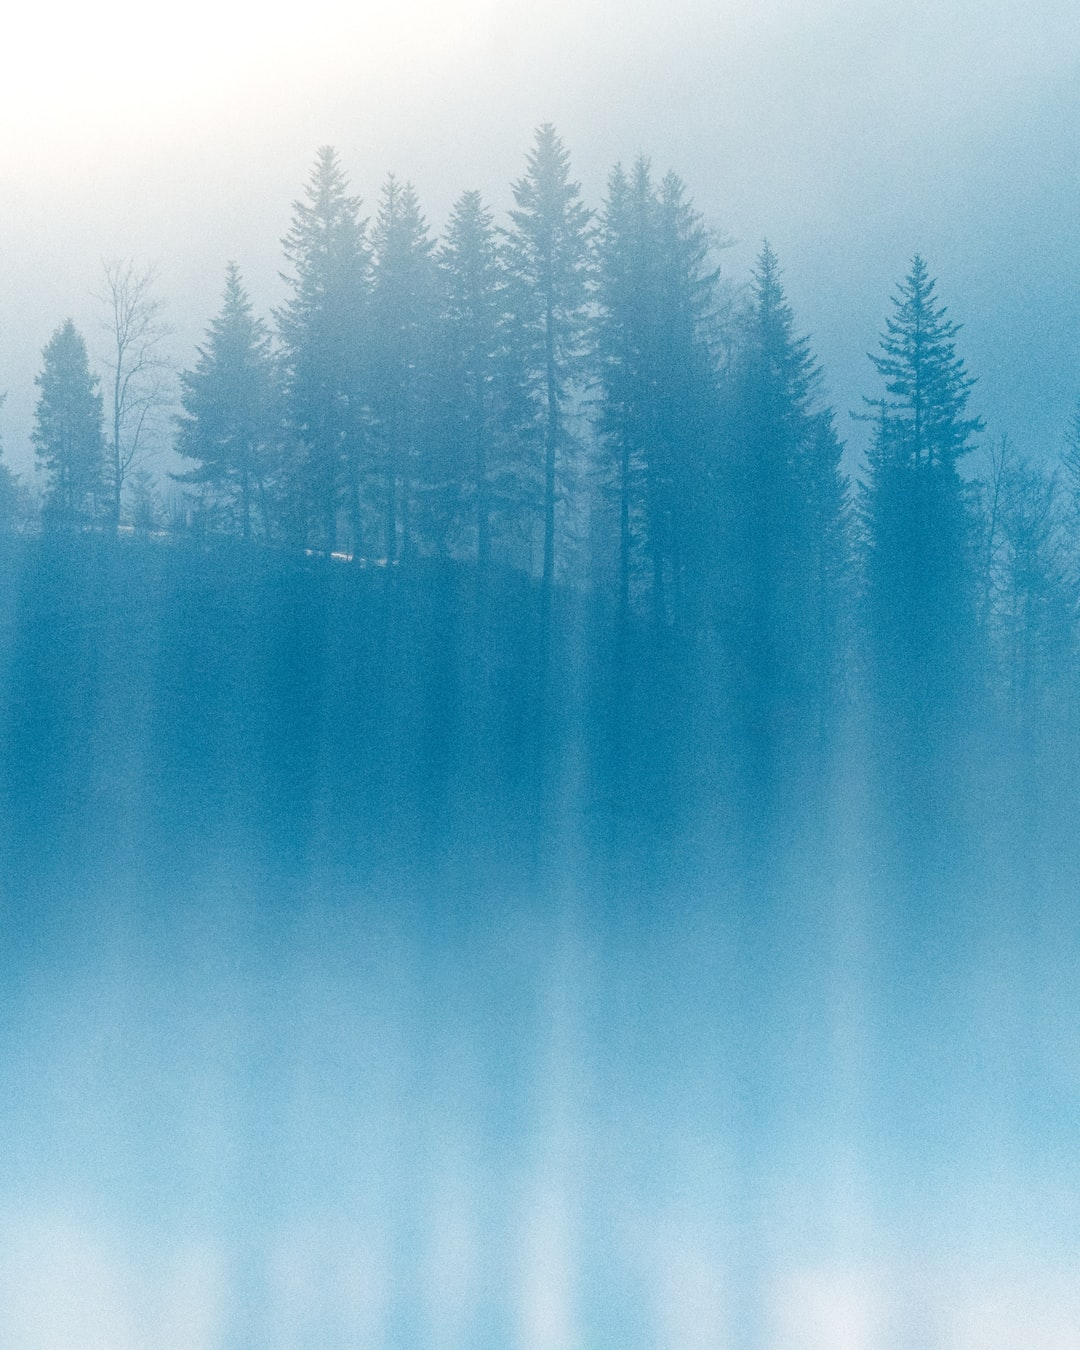 minimal, moody, misty forest with fog in the early morning